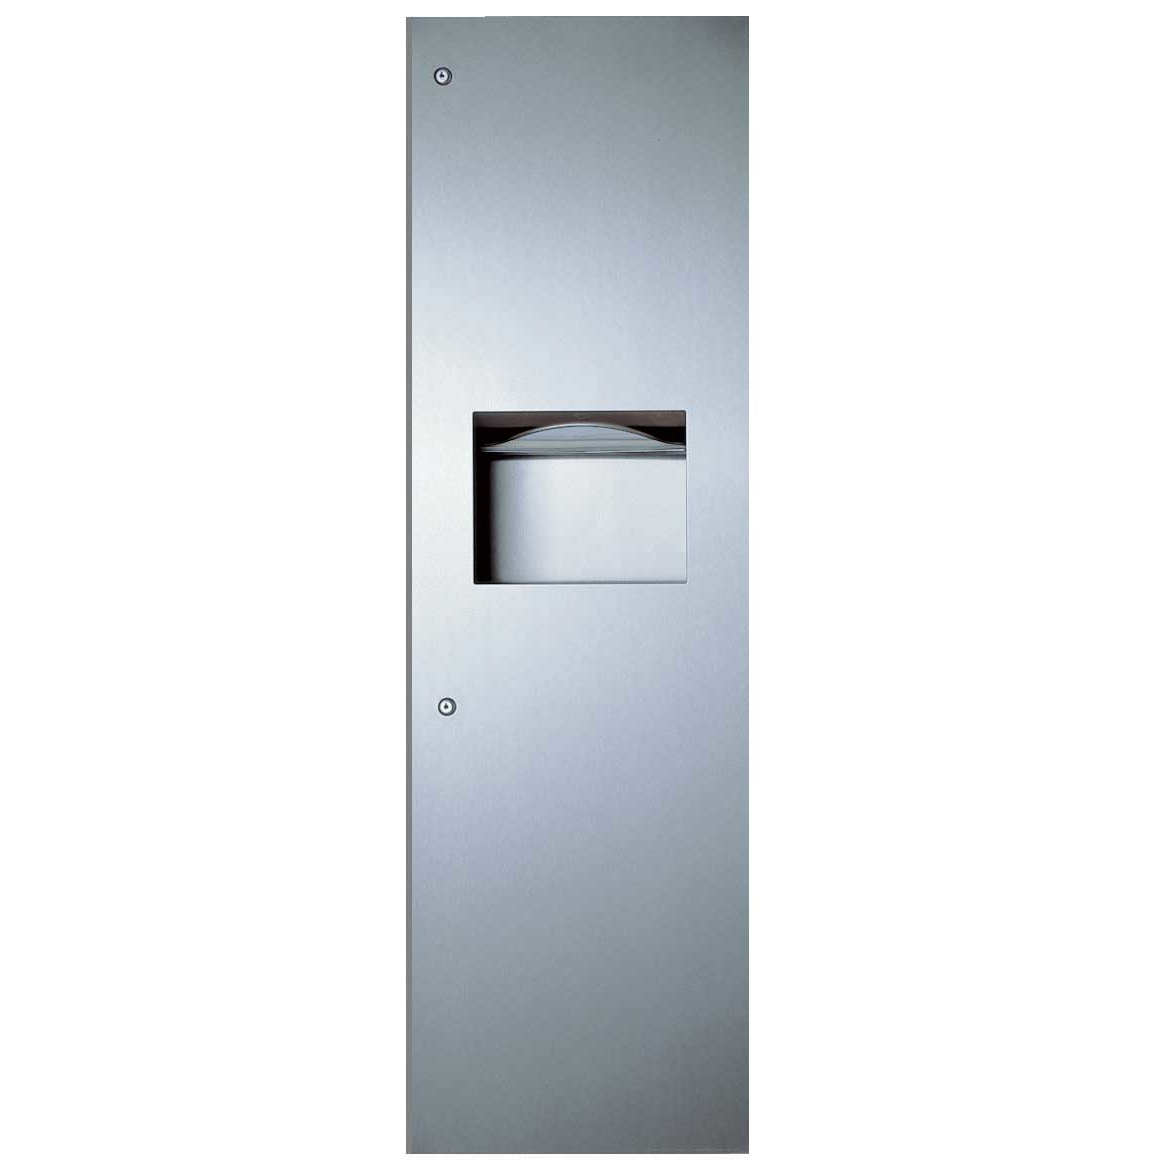 39003 Recessed Paper Towel Dispenser & Waste Receptacle